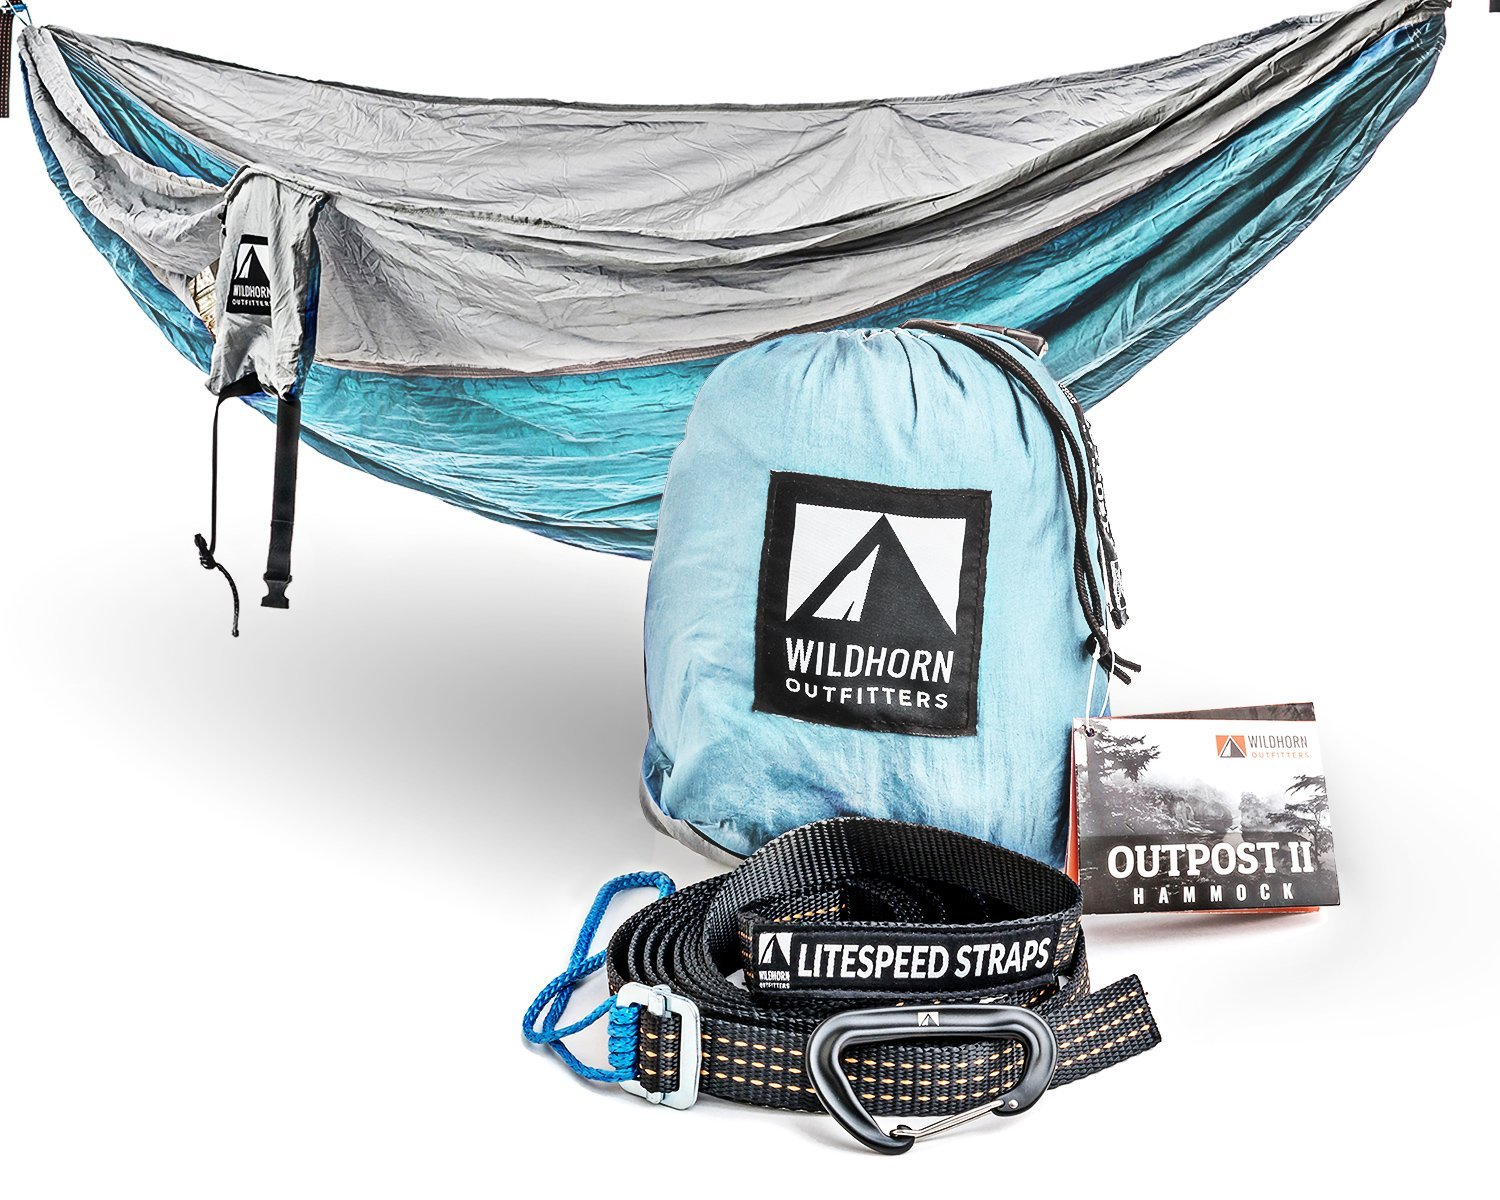 Wildhorn Outpost Portable Camping Hammock - Single or Double - 11 Feet Long - 400 lb Weight Capacity - Various Colors Available